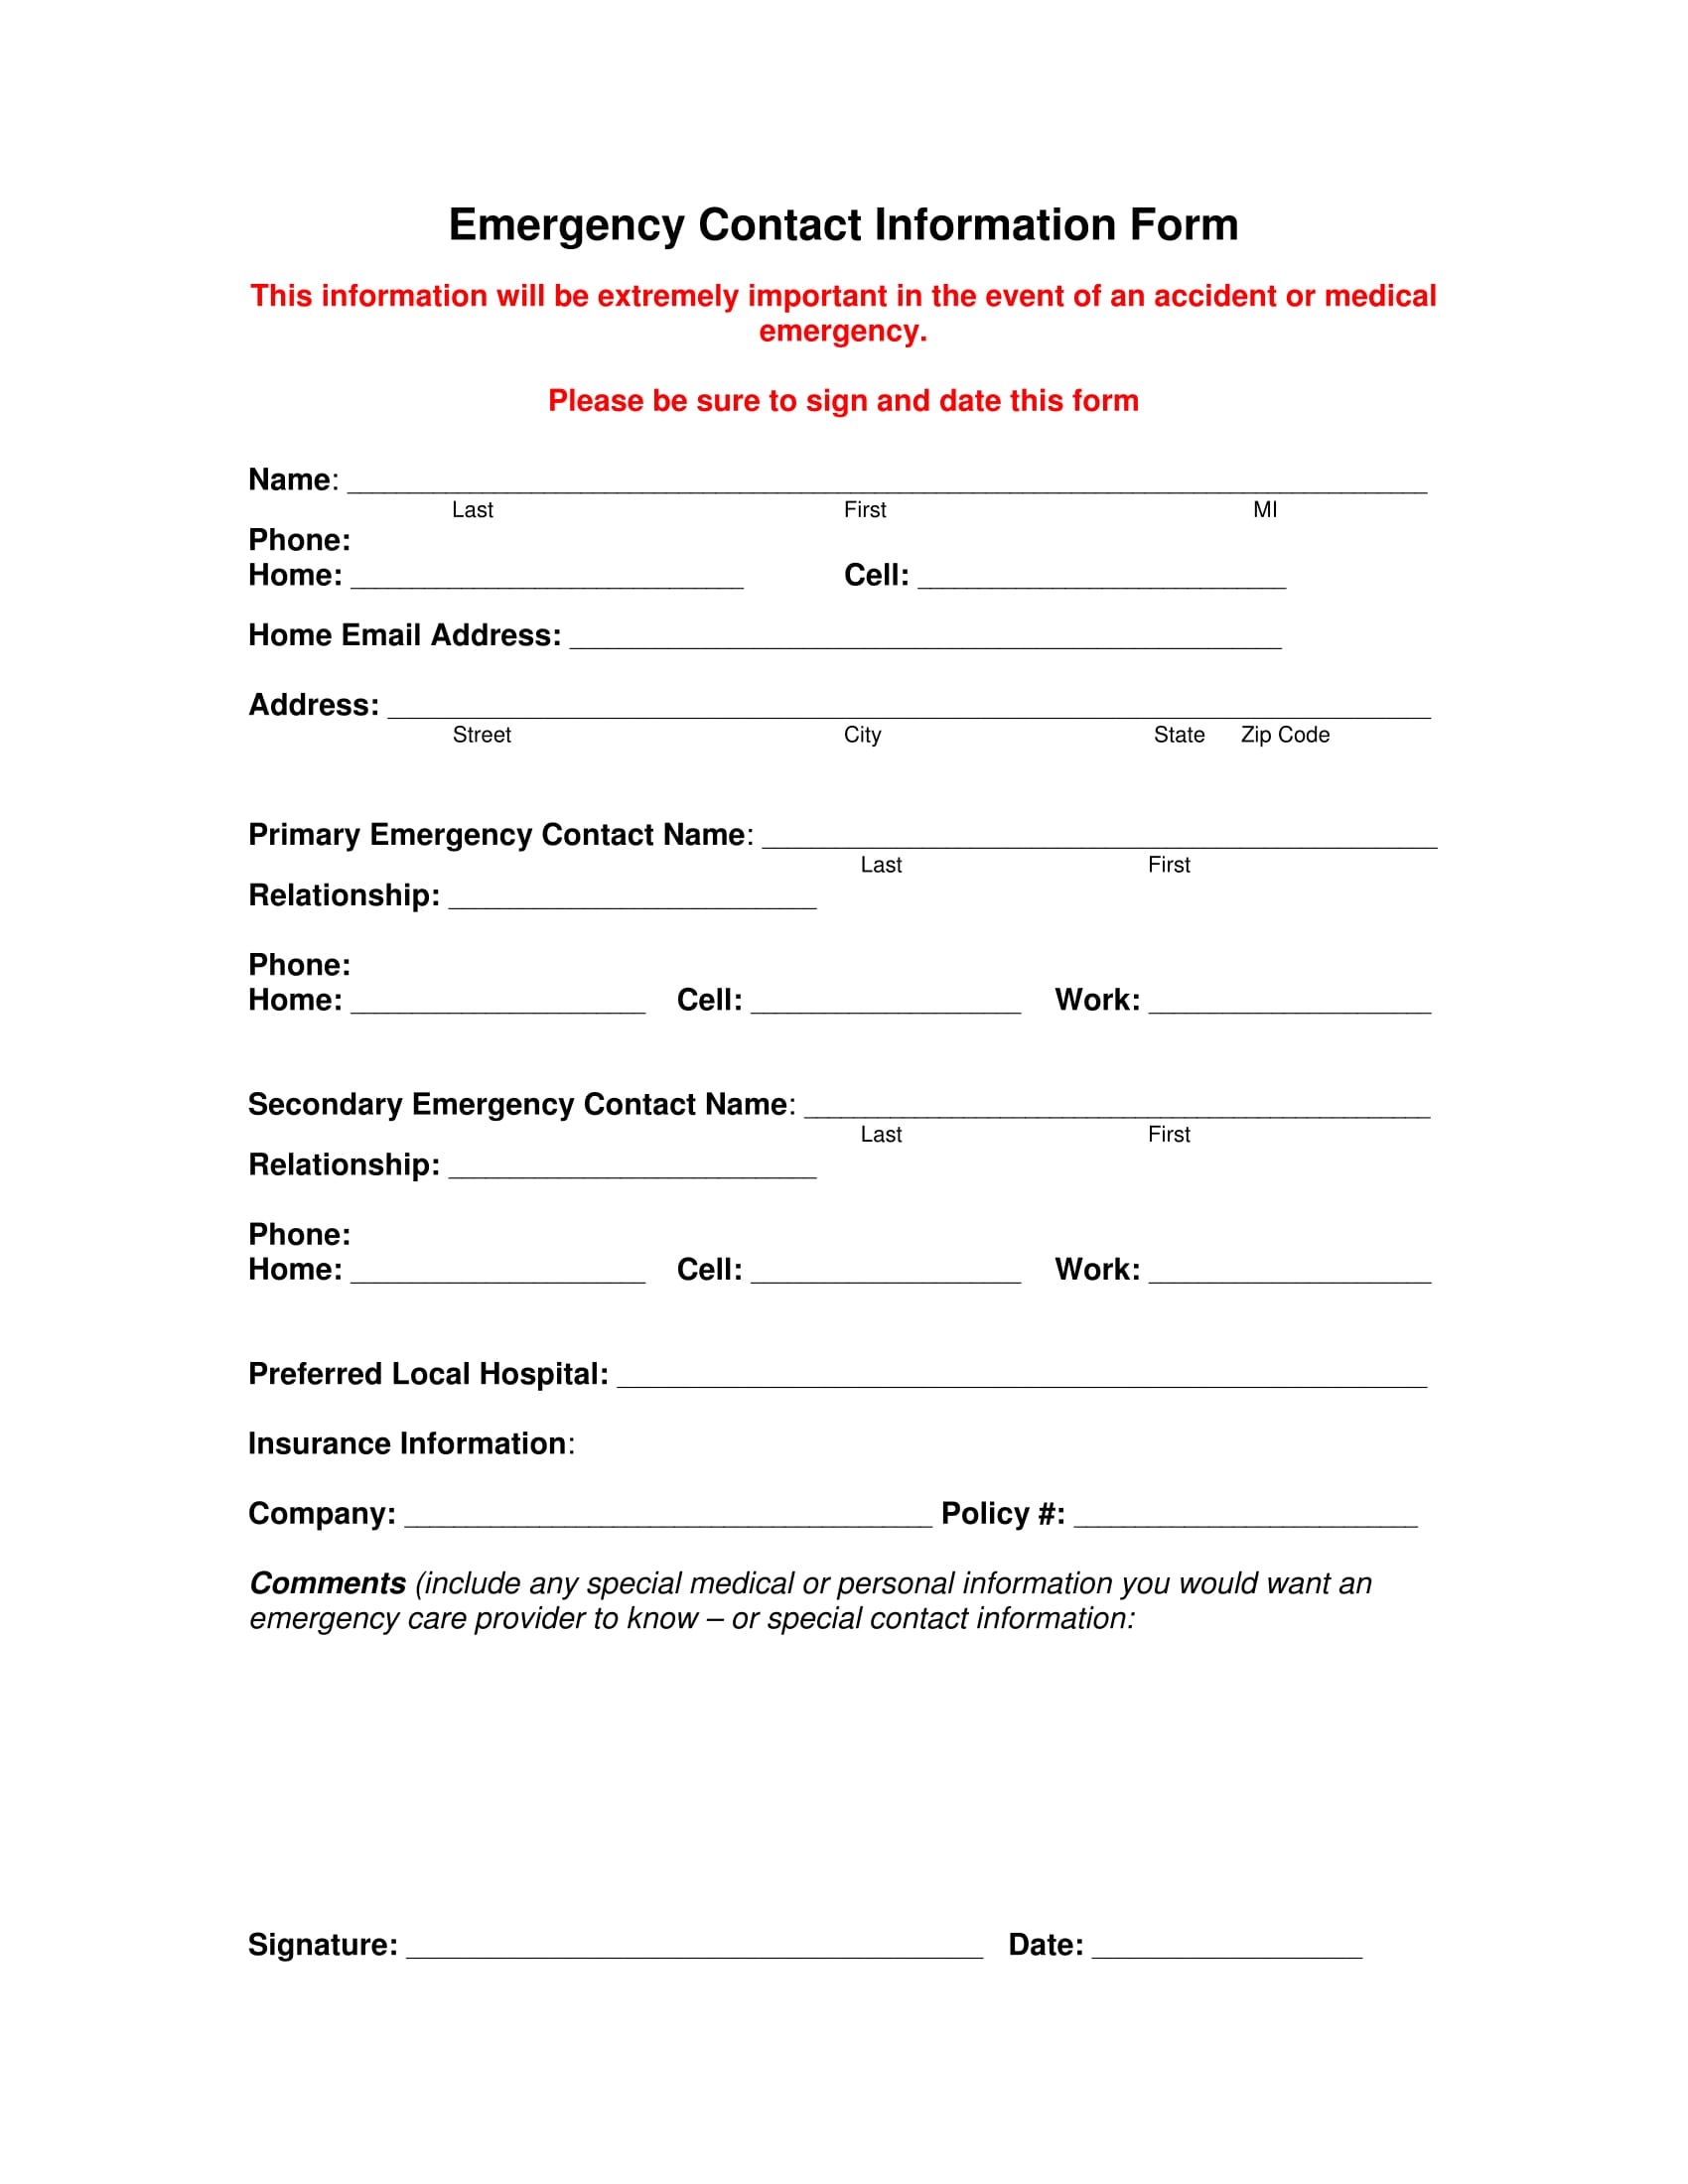 fillable emergency contact information form 1